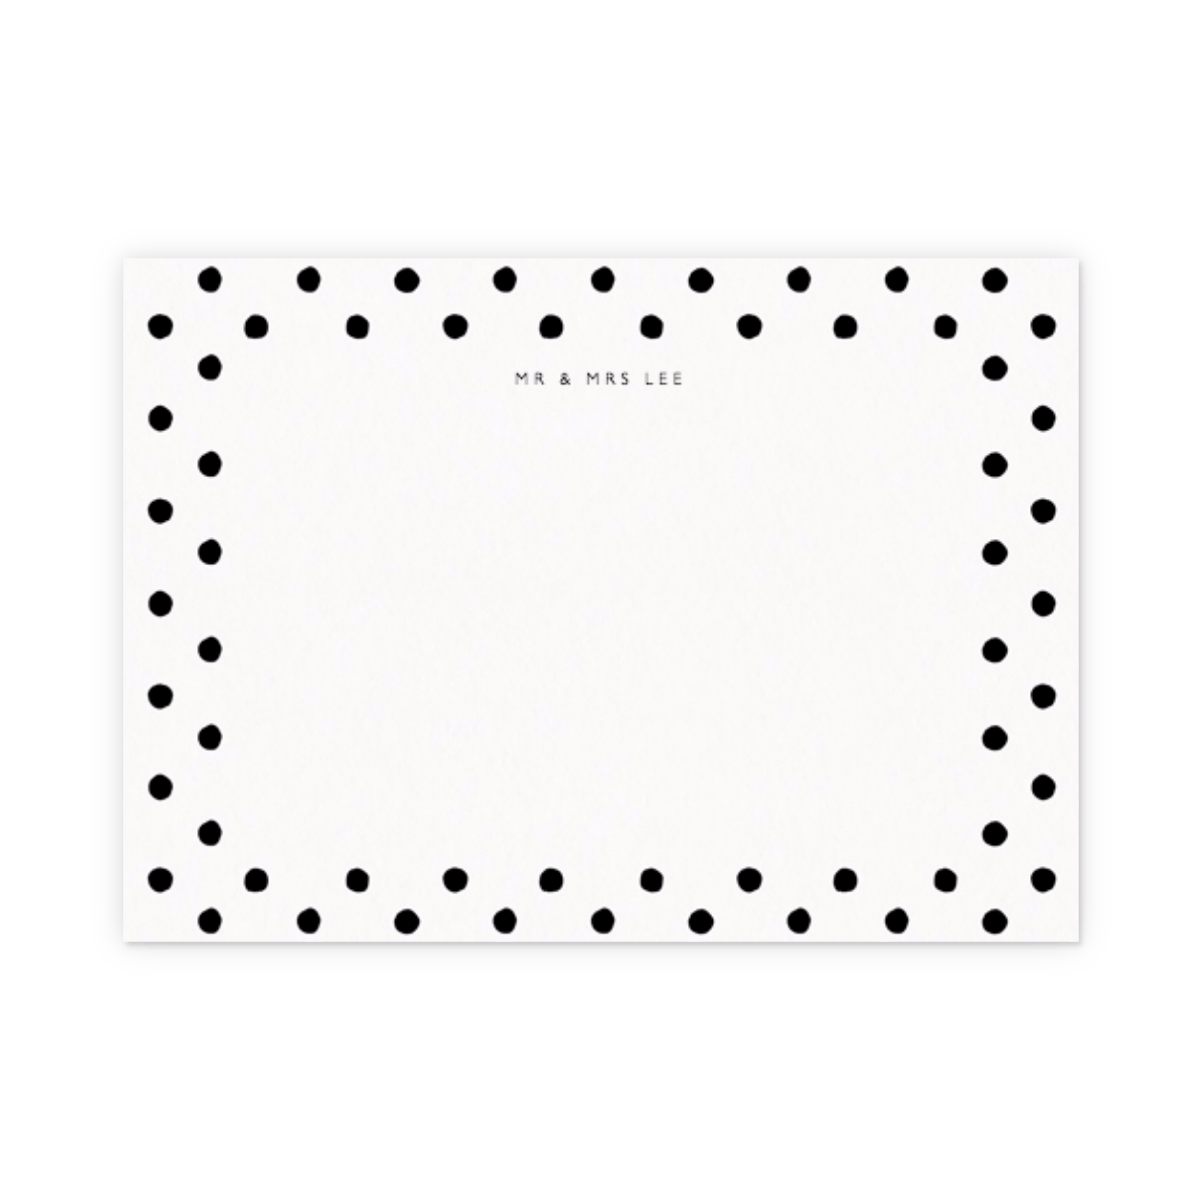 Https%3a%2f%2fwww.papier.com%2fproduct image%2f11167%2f10%2fpainted polka dot 2841 avant 1551217722.png?ixlib=rb 1.1